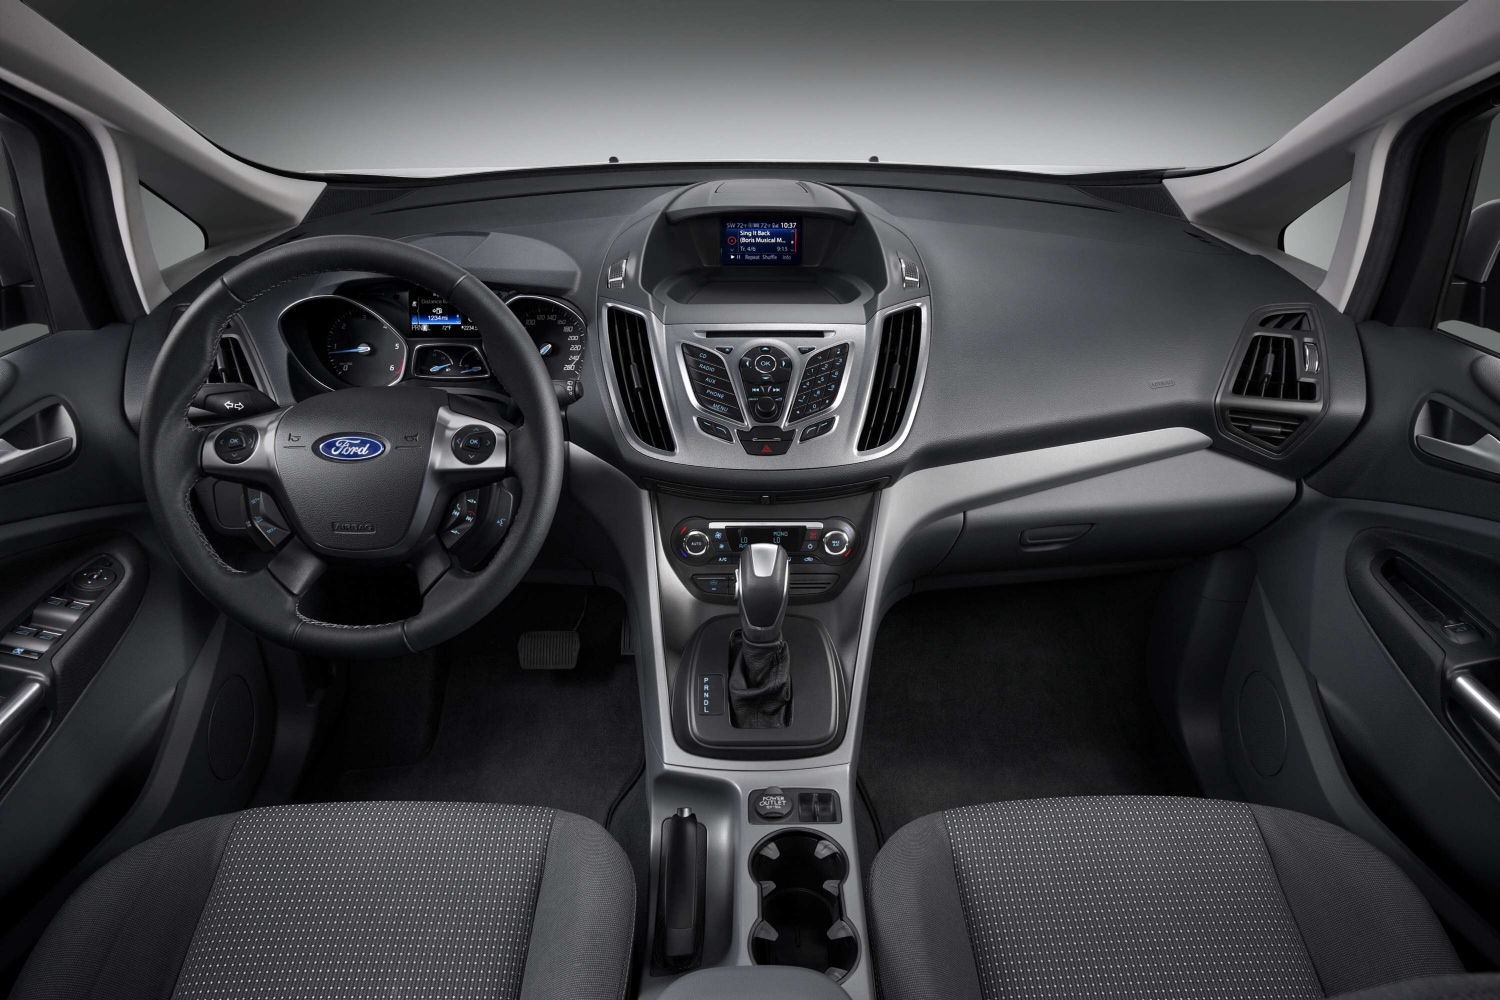 2010 Ford C-Max #14